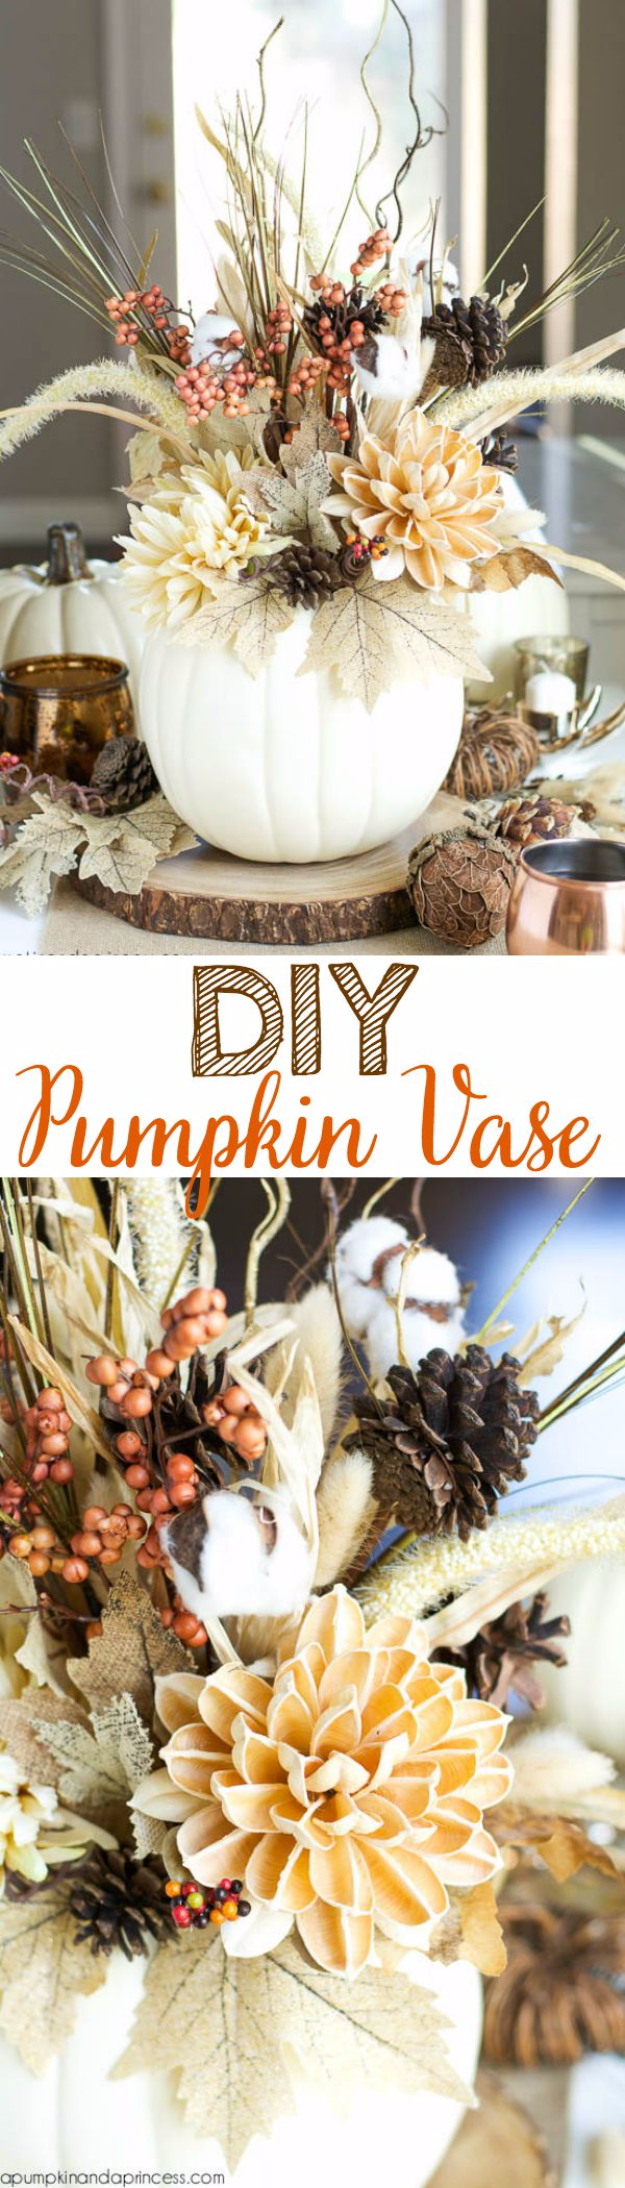 38 Best DIY Projects for Fall - DIY Pumpkin Vase - Quick And Easy Projects For Fall, Fun DIY Projects To Try This Fall, Cute Fall Craft Ideas, Fall Decors, Easy DIY Crafts For Fall